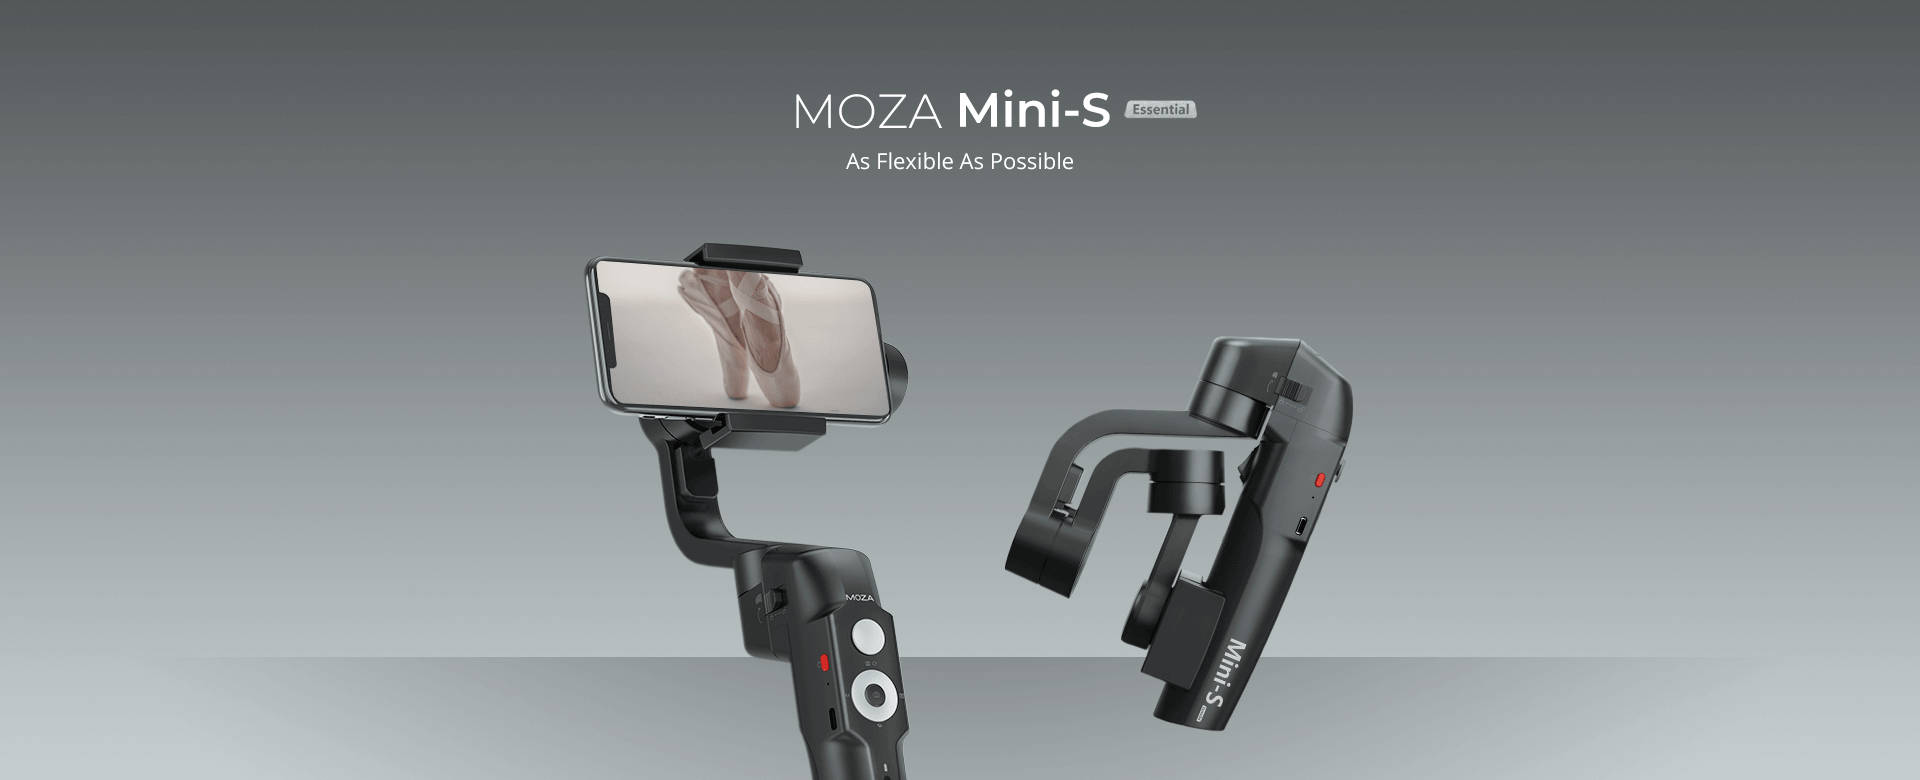 MOZA Mini-S As Flexible As Possible